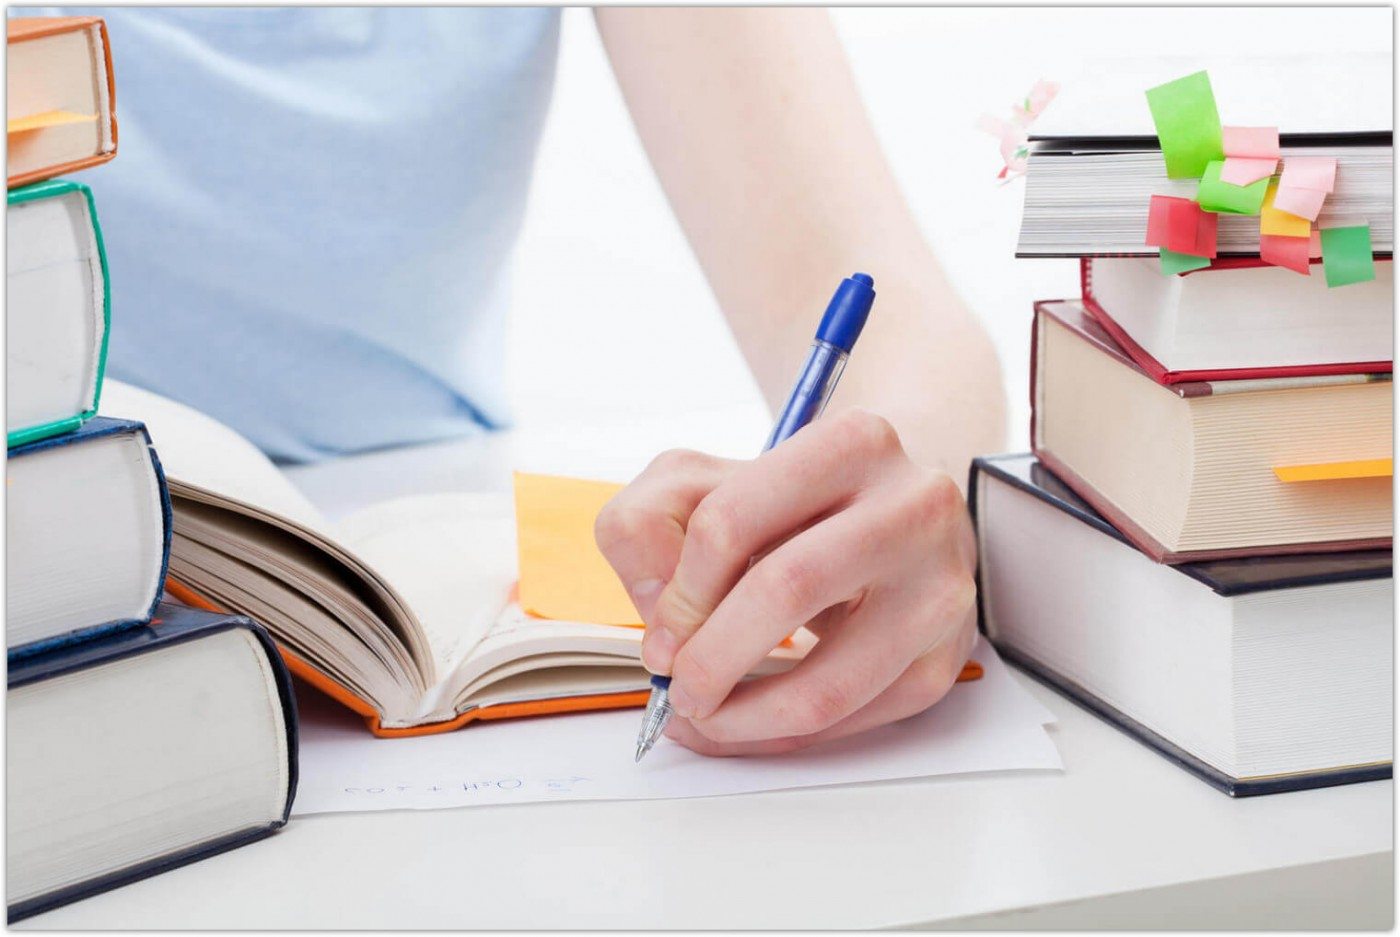 020 Research Paper Topics Education Topic Wondrous Suggestions Ideas 1400